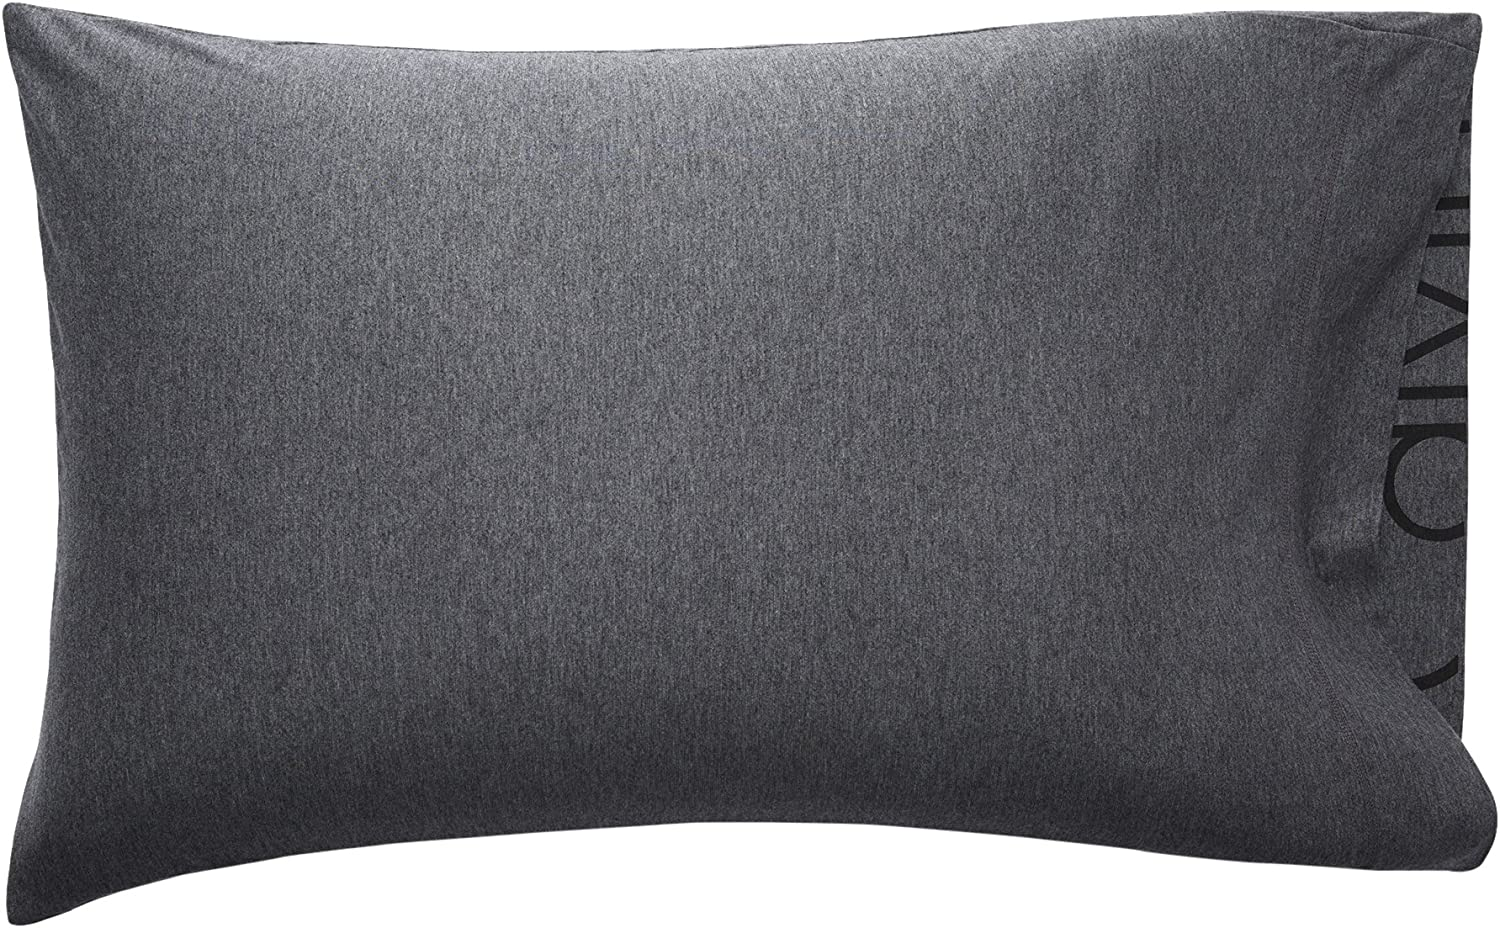 Calvin Klein Home Modern Cotton Body, Standard Pillowcase Pair, Charcoal, 2 Count